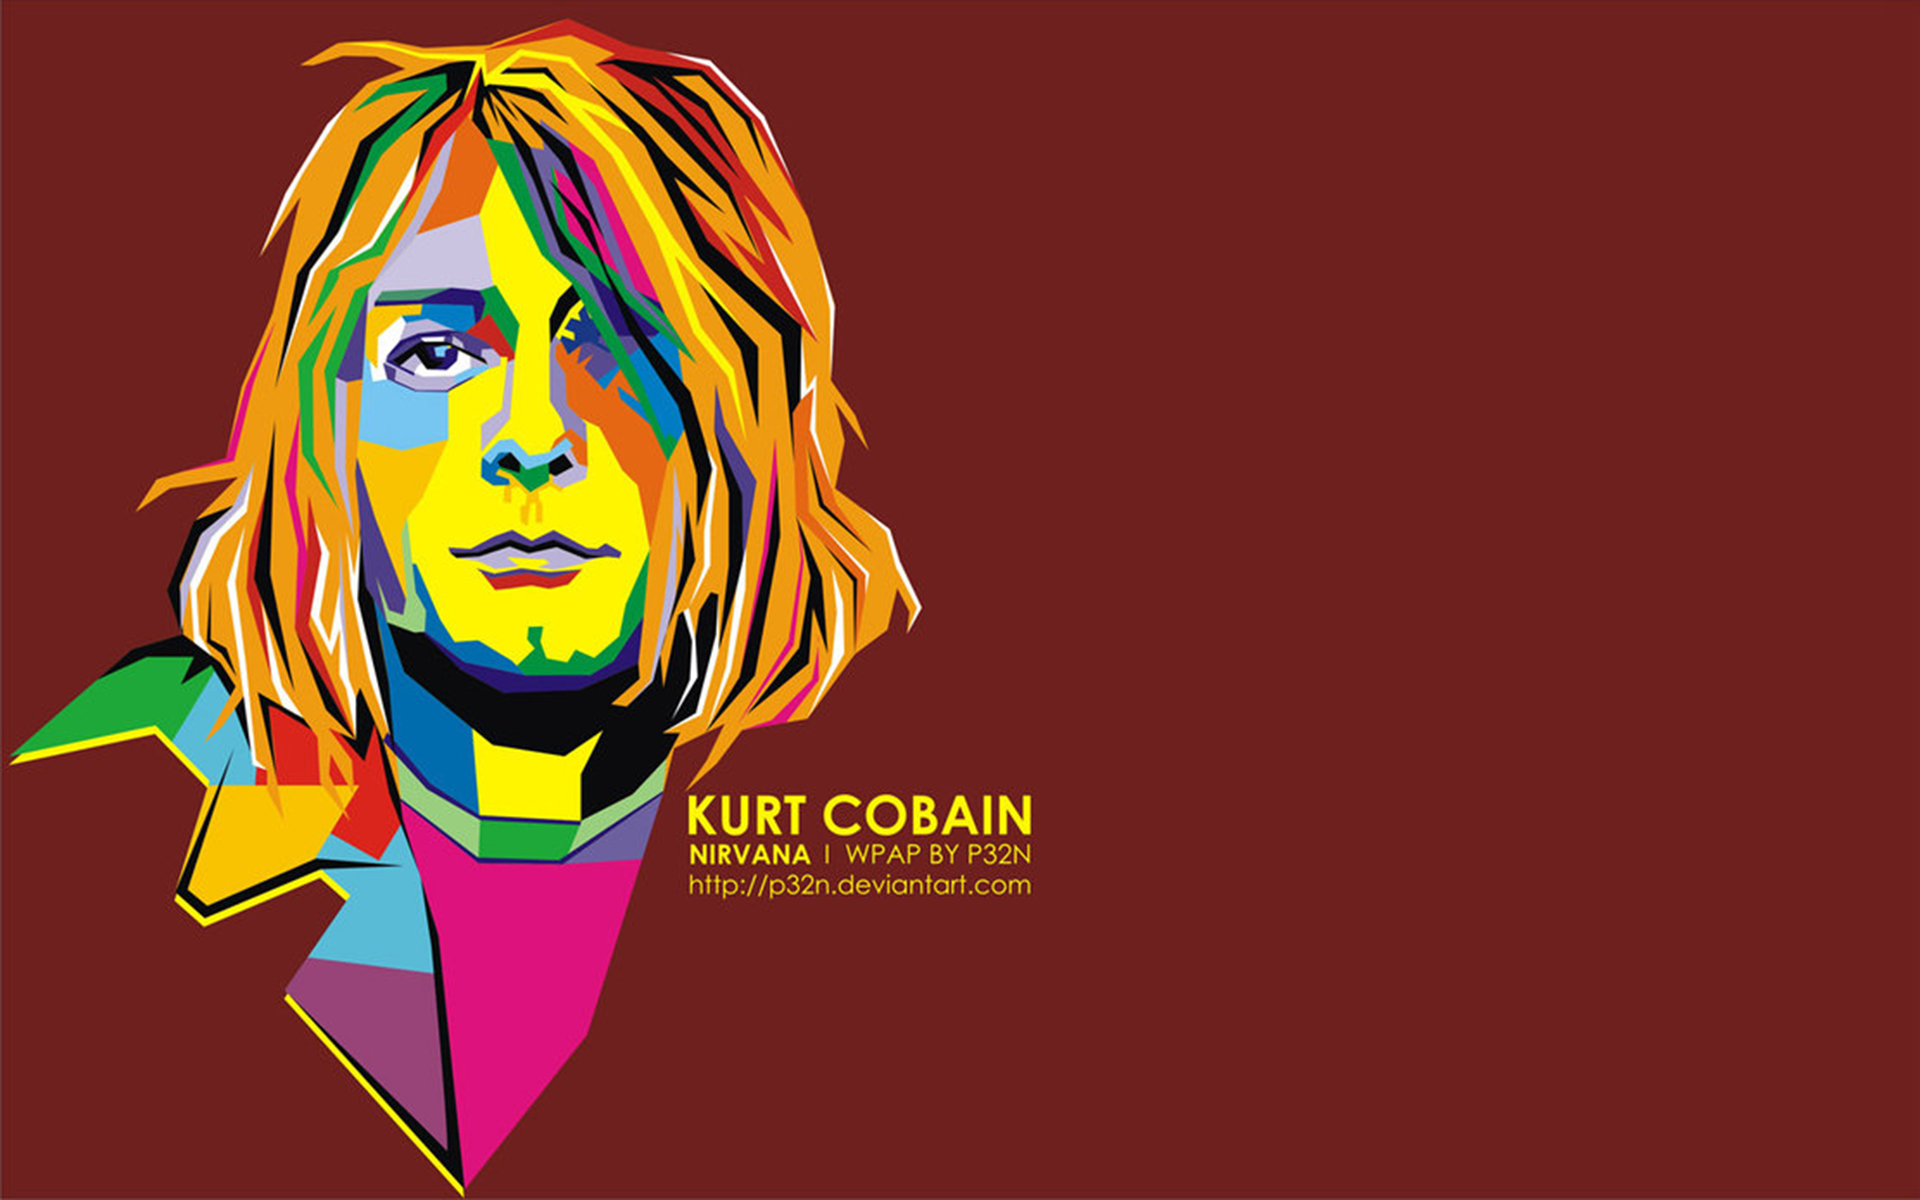 Kurt Cobain In WPAP Design 1920x1200 Download Resolutions Desktop 1920x1080